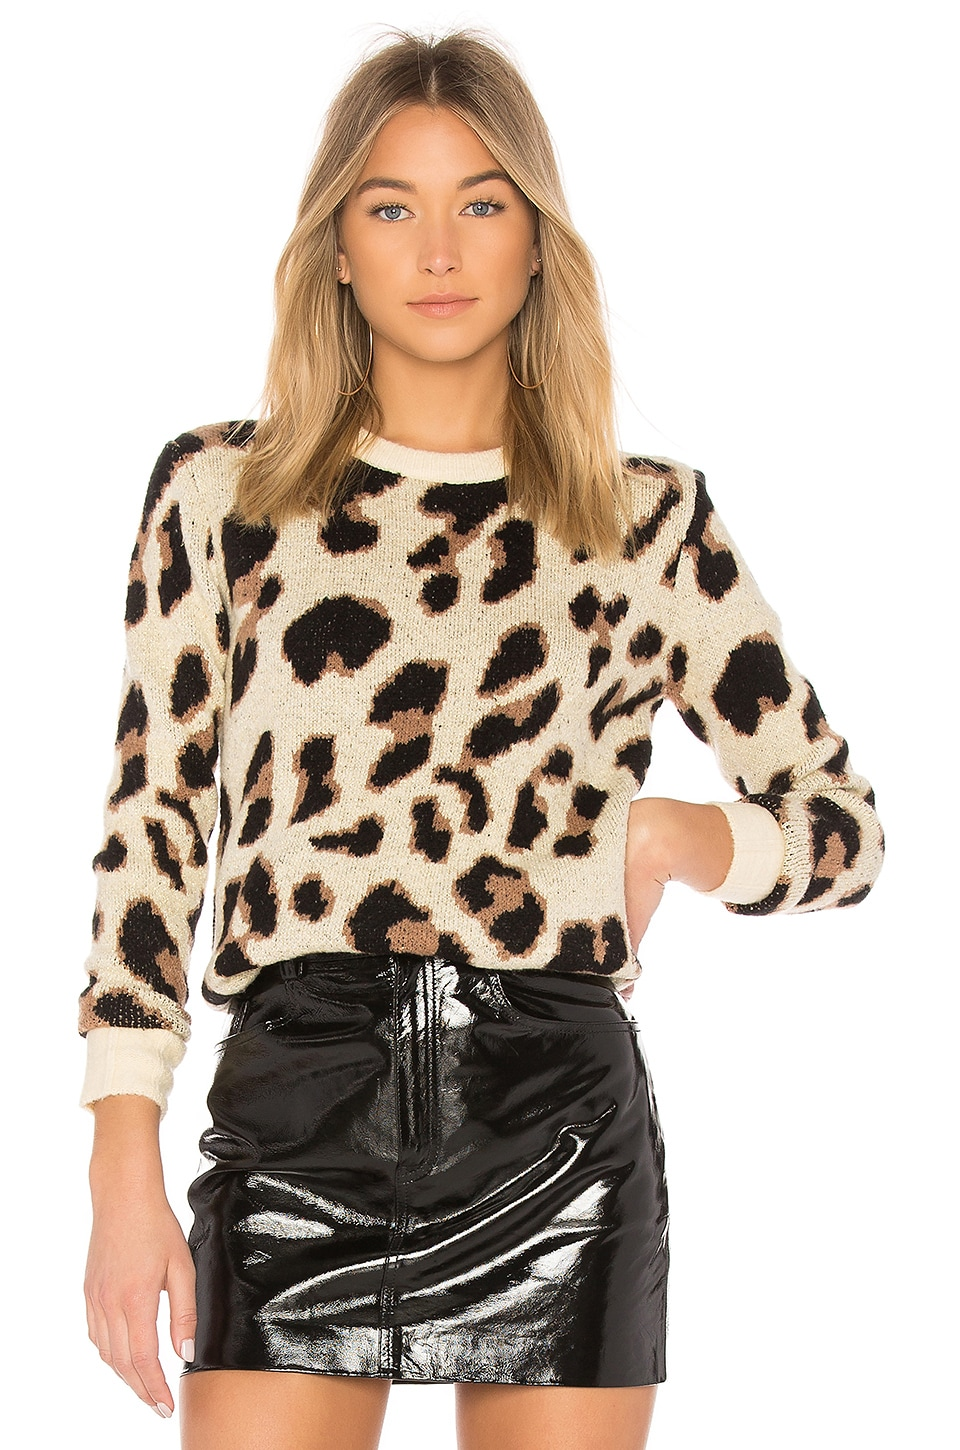 Lovers + Friends Speak Up Sweater in Metallic Leopard